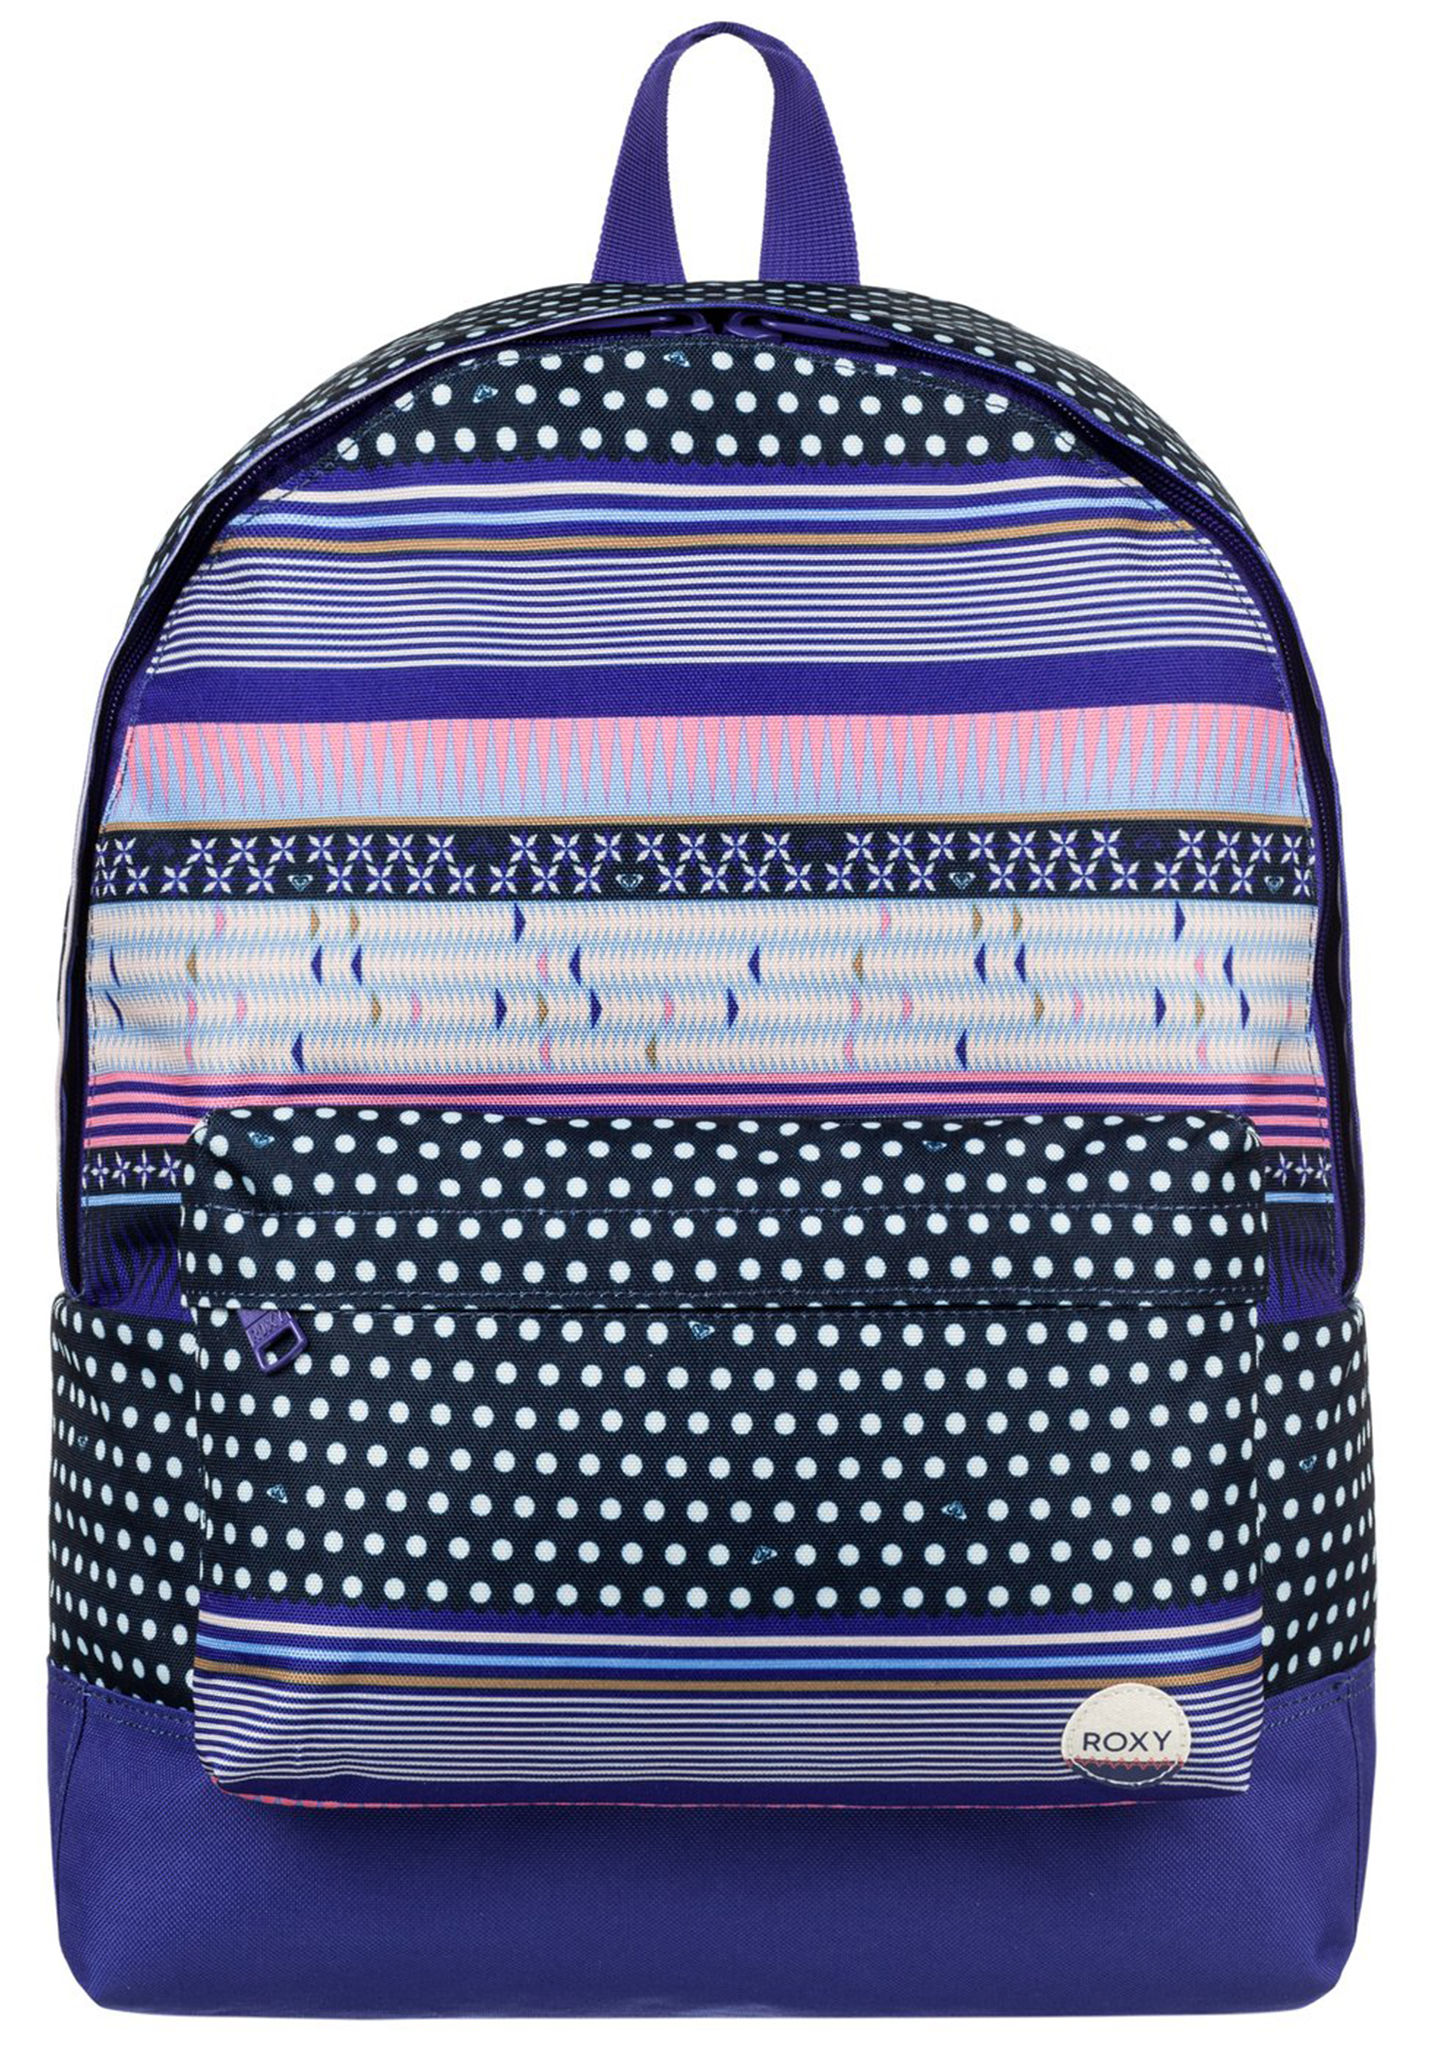 4d7960a22 Roxy Sugar Baby - Mochila para Mujeres - Multicolor - Planet Sports